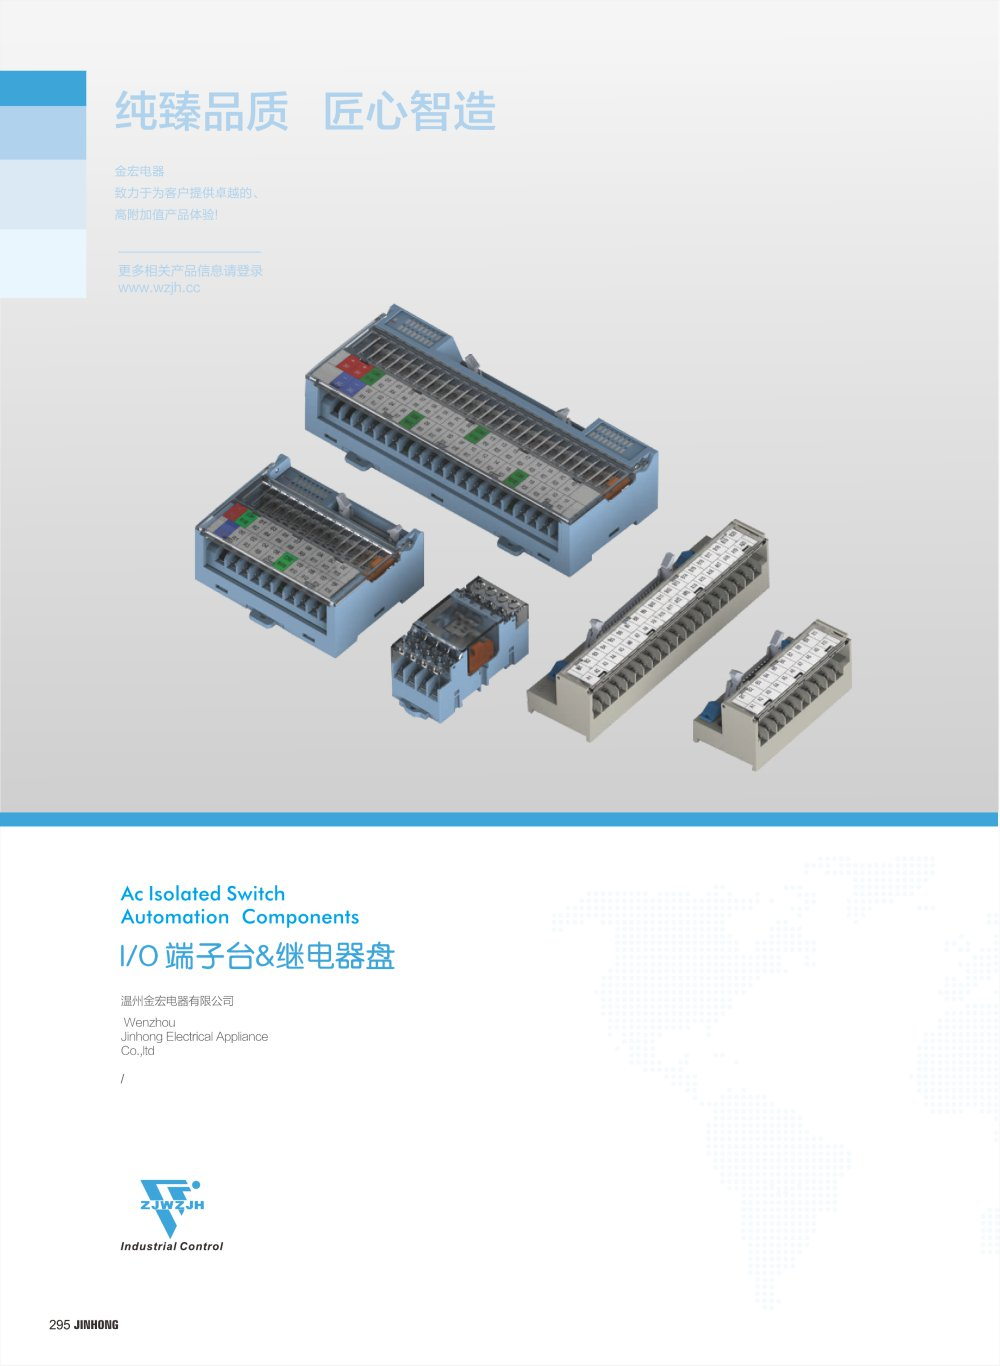 Ac Isolated Switch Wenzhou Jinhong Electric Appliance Pdf How To Wire Switches In Parallel Electrical Technology 1 24 Pages